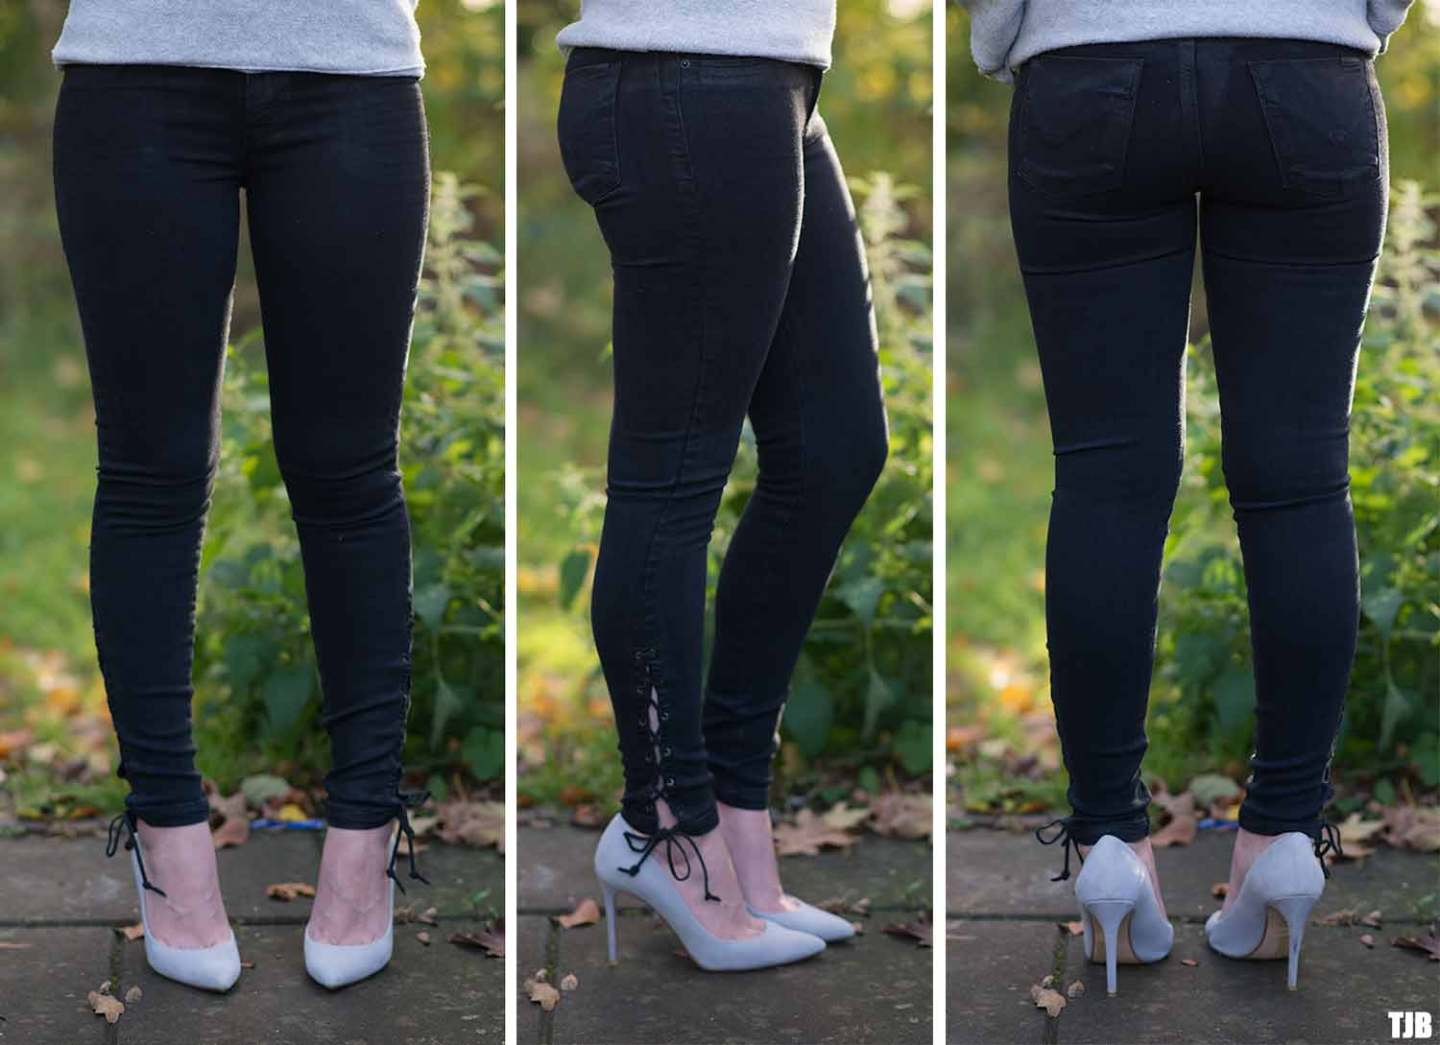 hudson-nix-skinny-lace-up-jeans-review-4